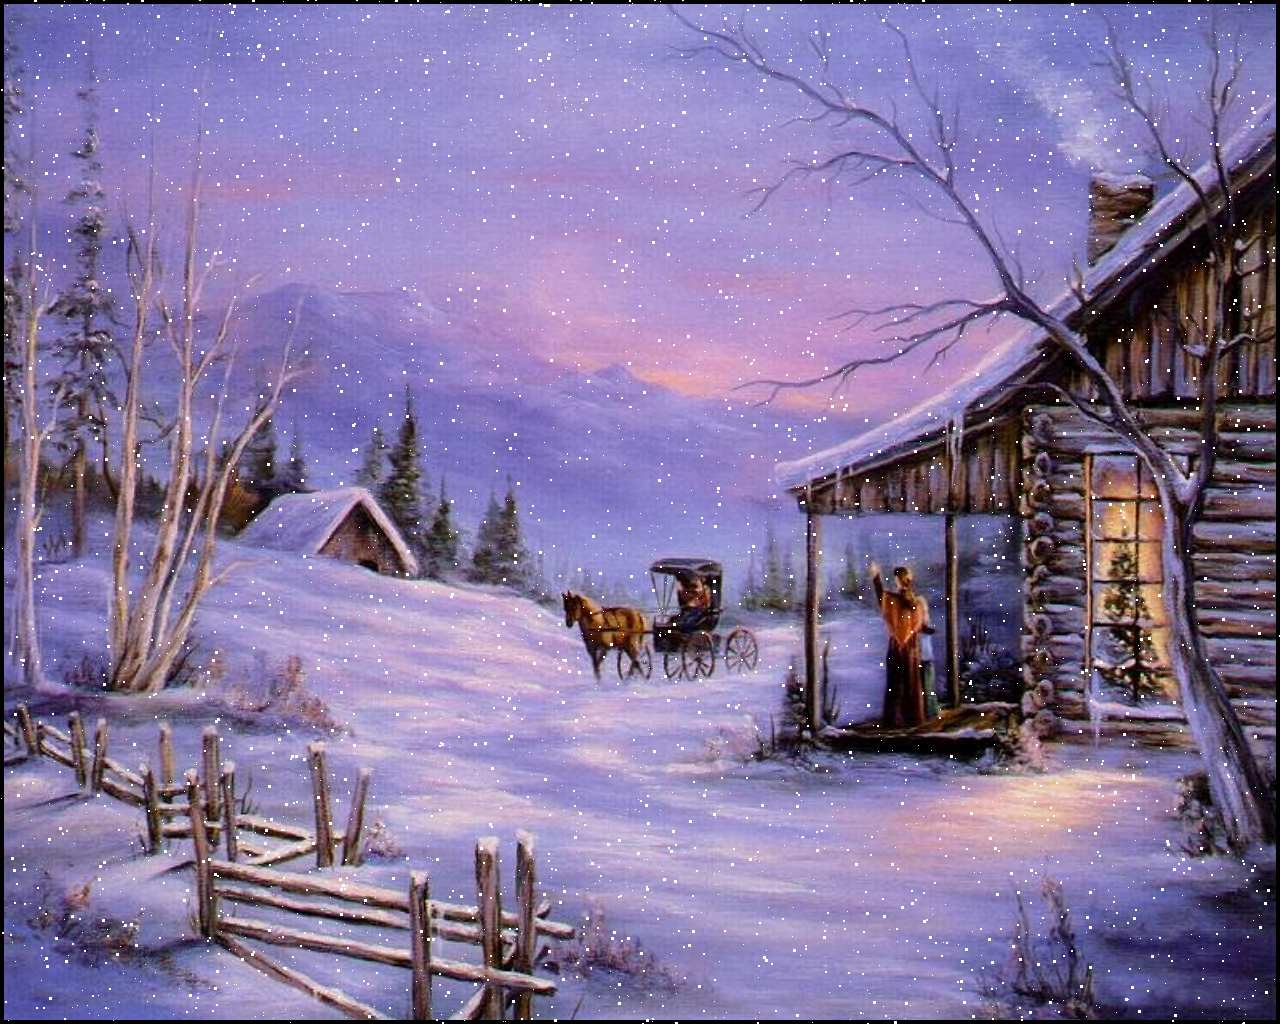 3d winter scenes wallpaper - photo #18